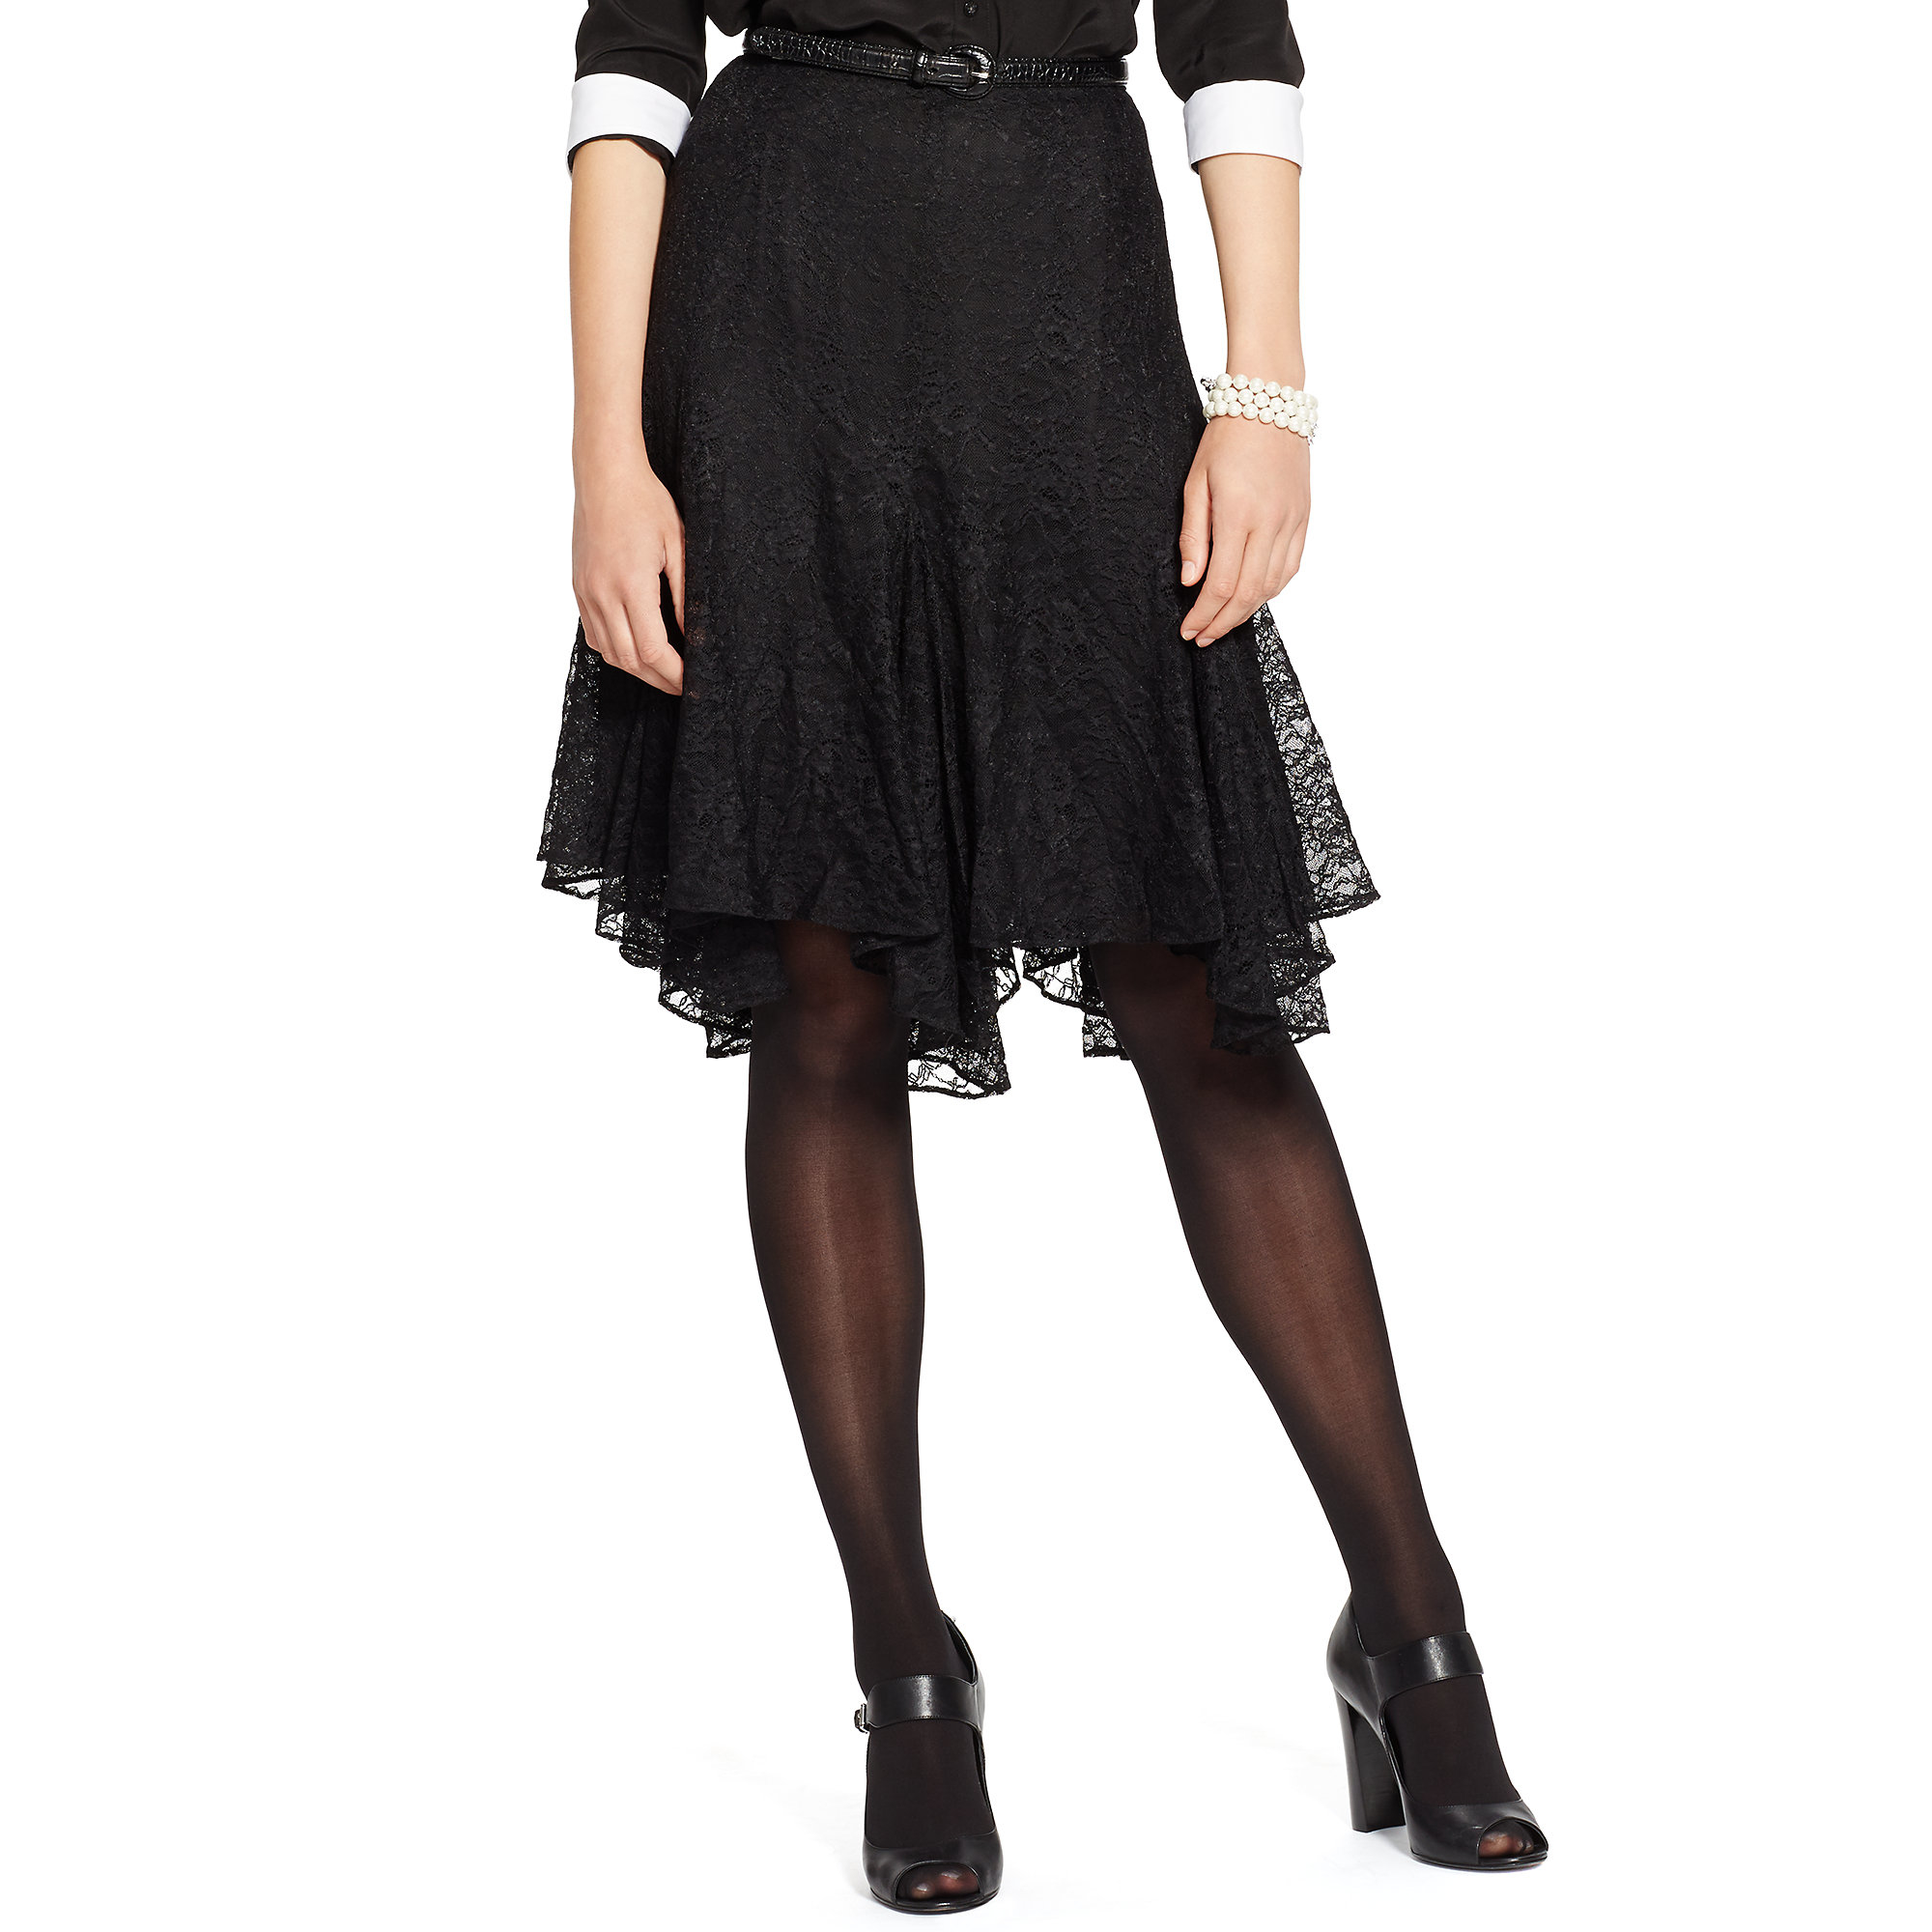 Ralph lauren Lace A-line Skirt in Black | Lyst